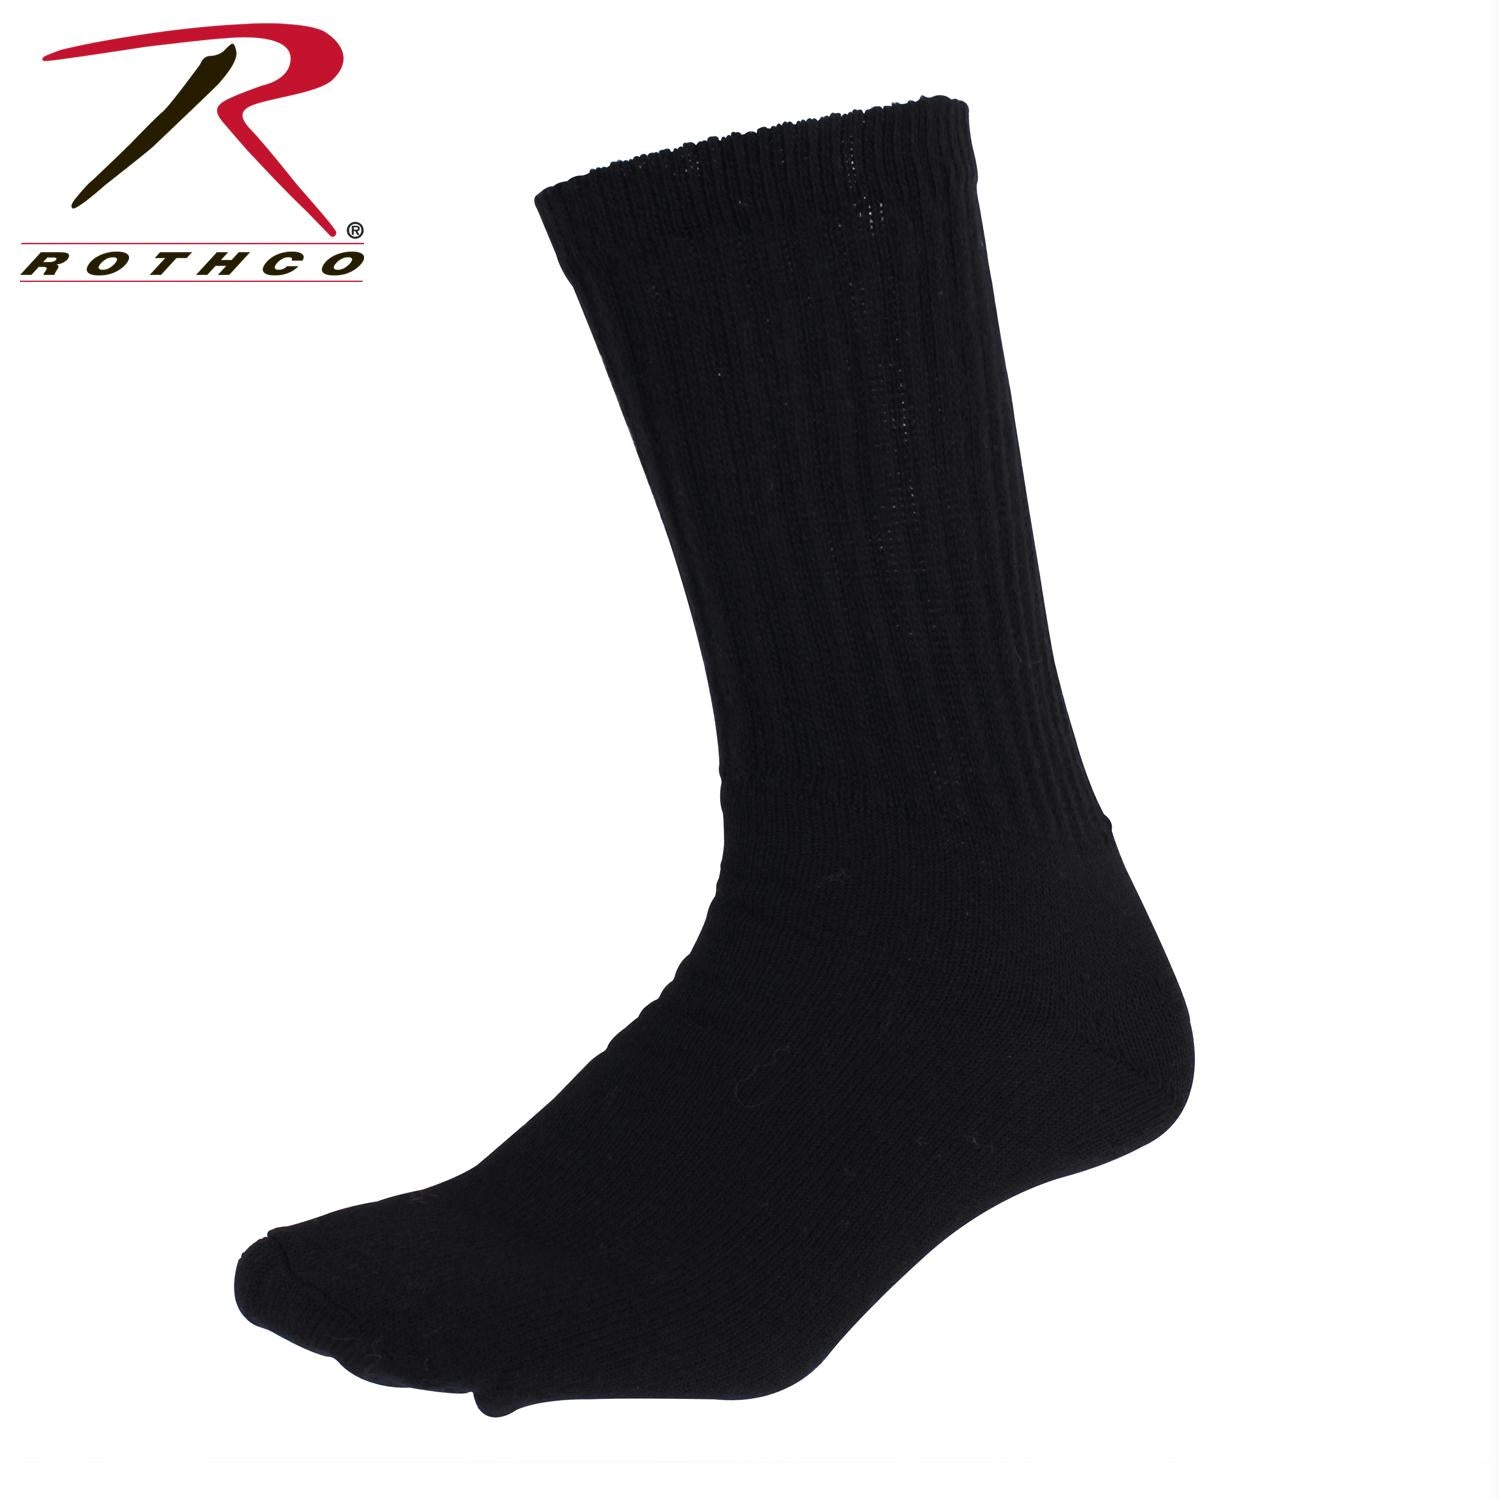 Rothco Athletic Crew Socks - Black / XL